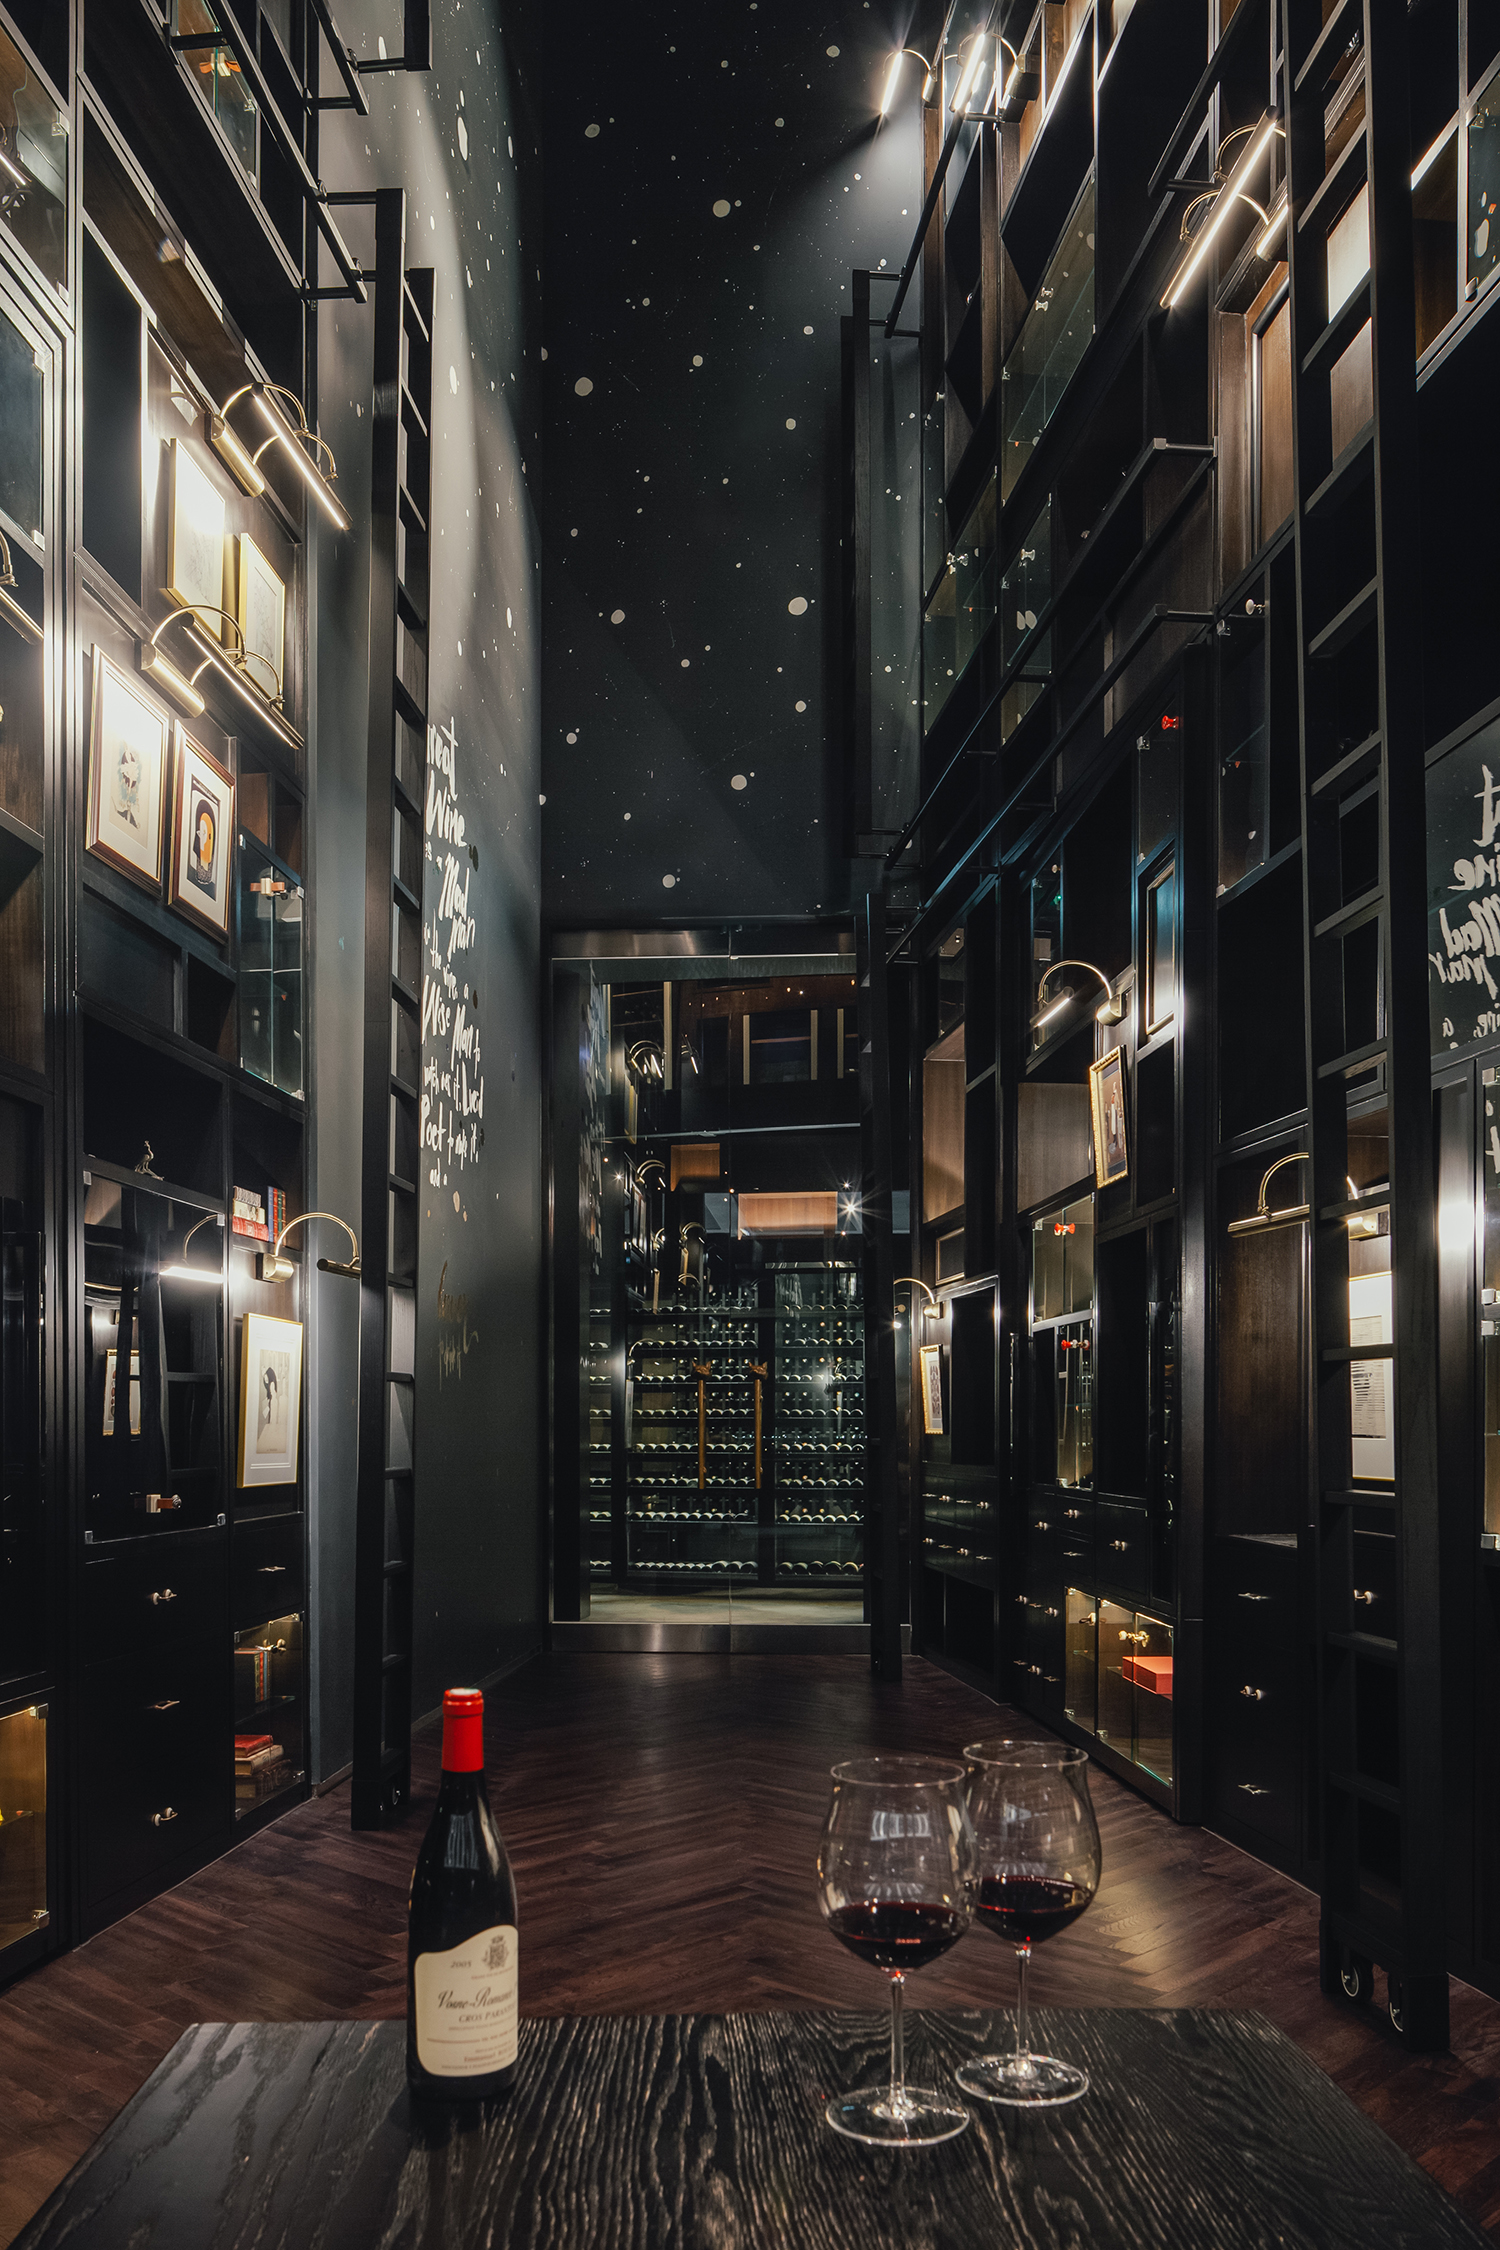 The wine tasting wall is 16 meters high and features three levels of catwalks and LED/fiber optic starlight elements that play into the lunar design motif like stars in the sky.